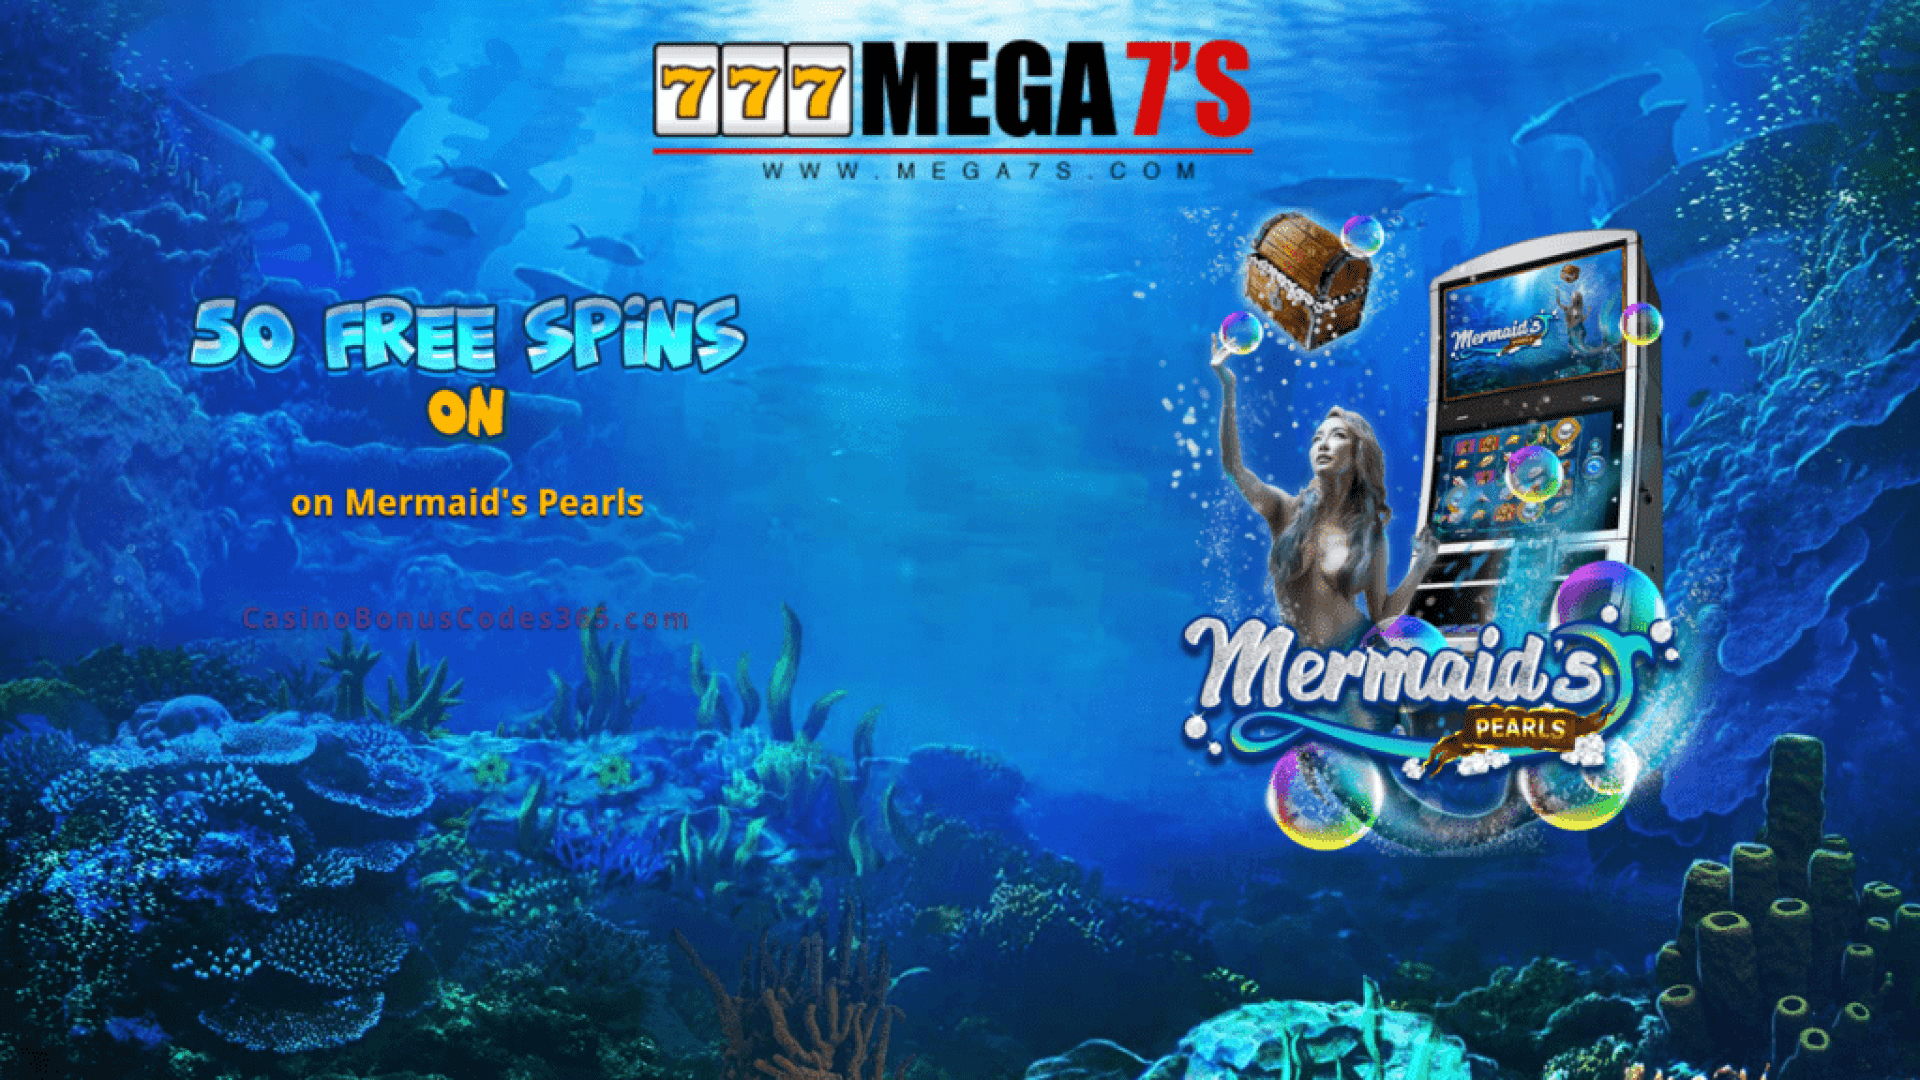 Mega7s Casino 50 FREE RTG Mermaid's Pearls Spins Exclusive Welcome Offer